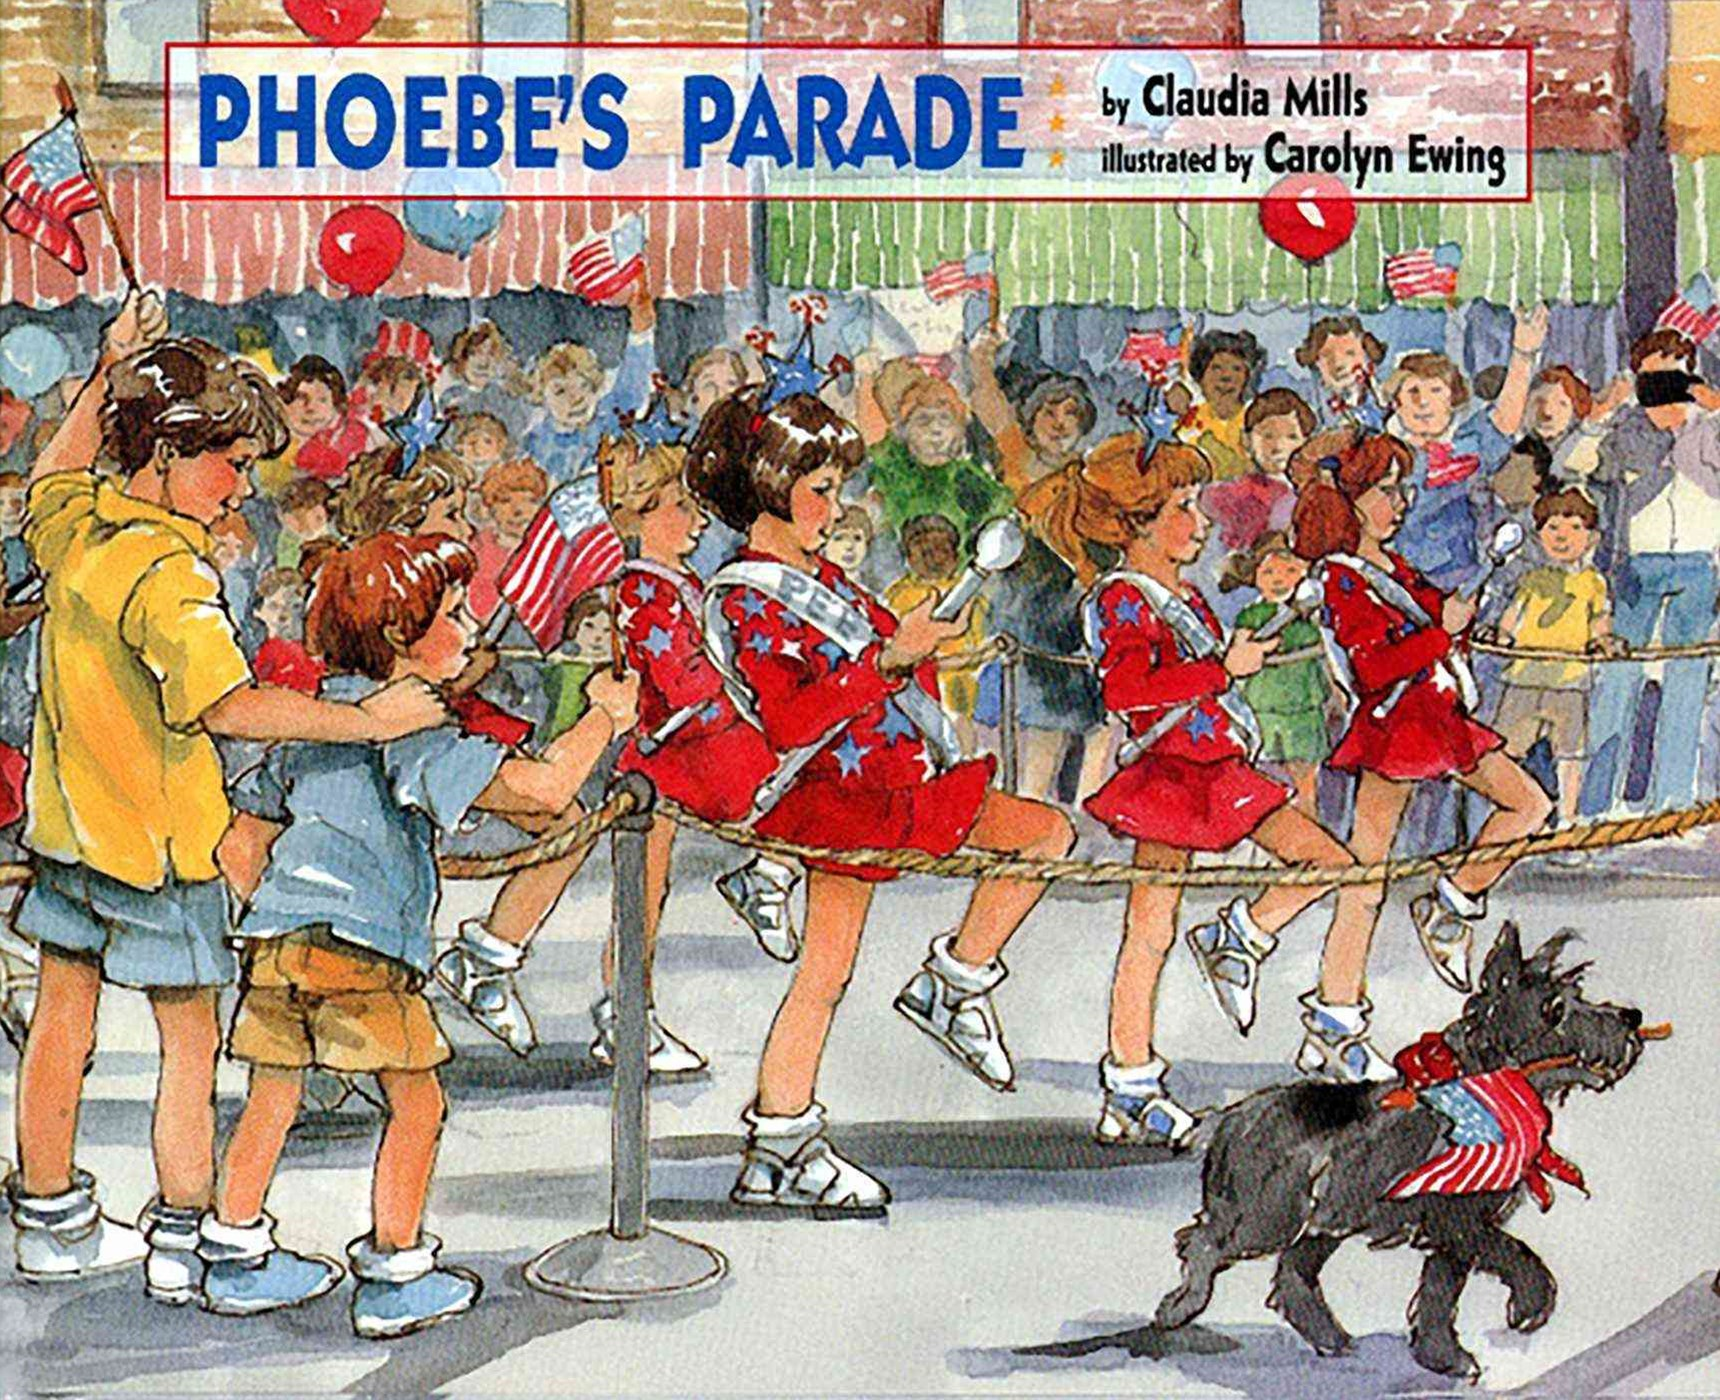 Phoebe's Parade